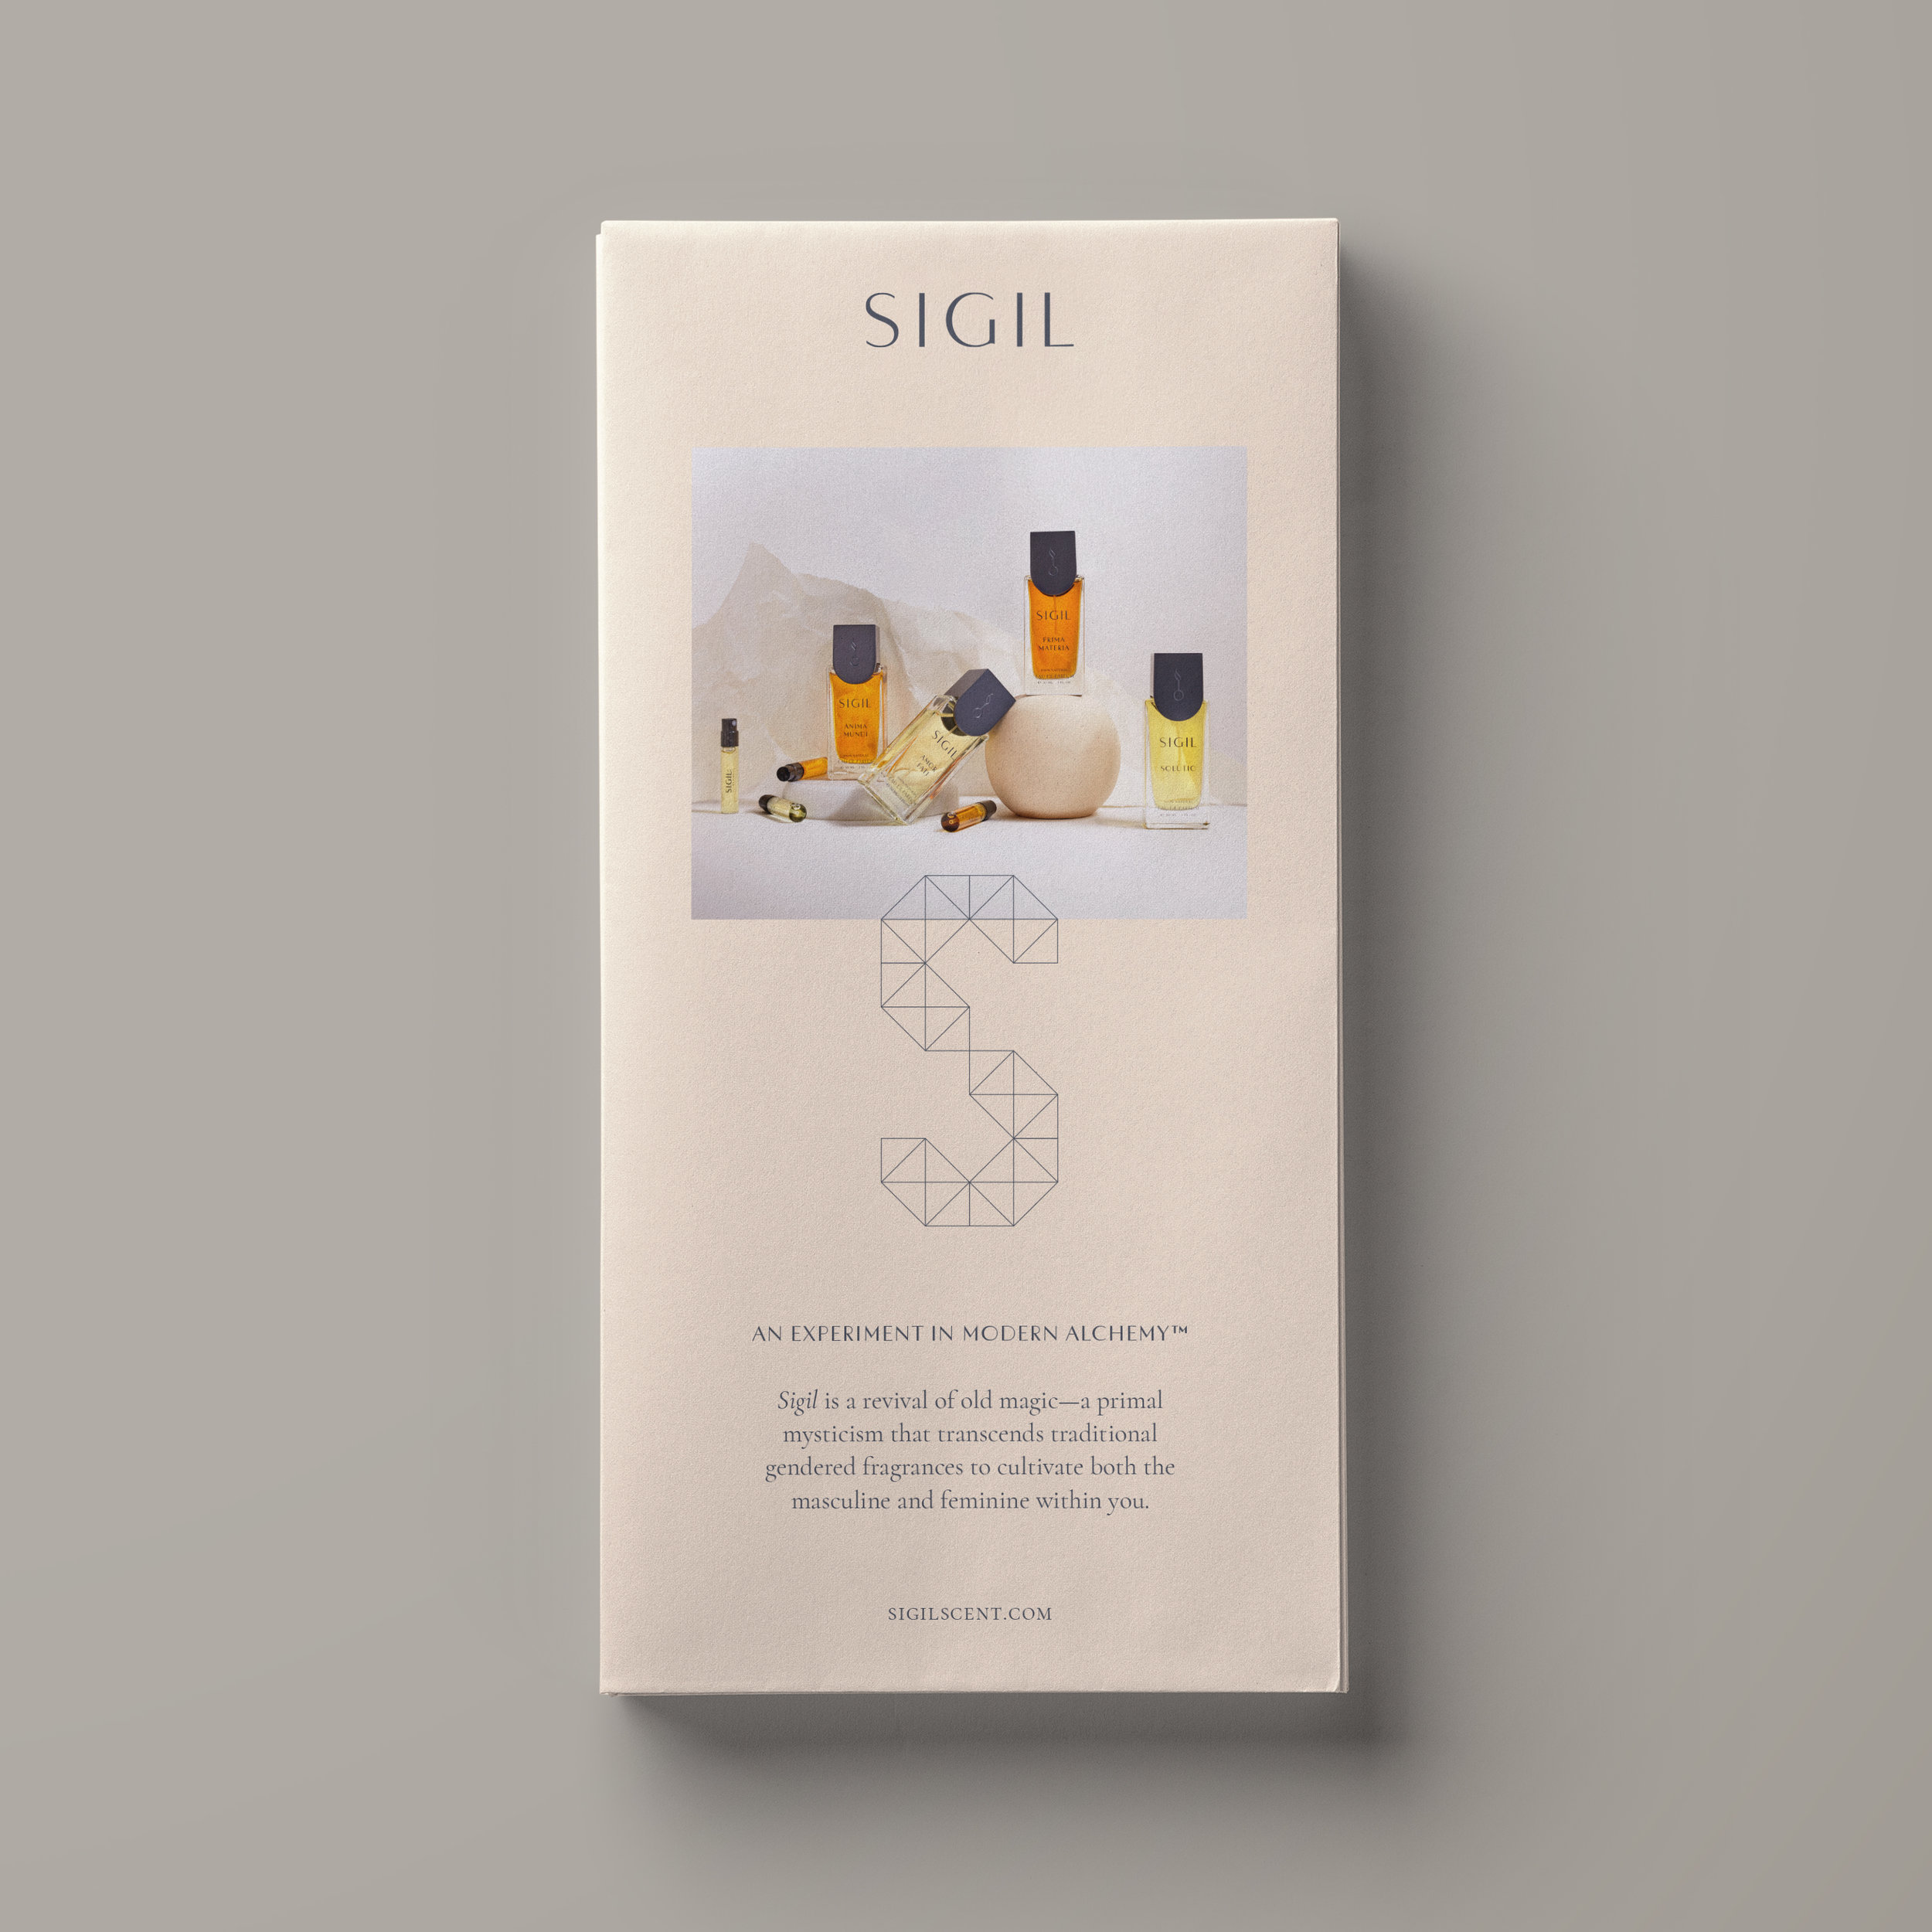 Sigil-Scent-Brochure-Cover.jpg